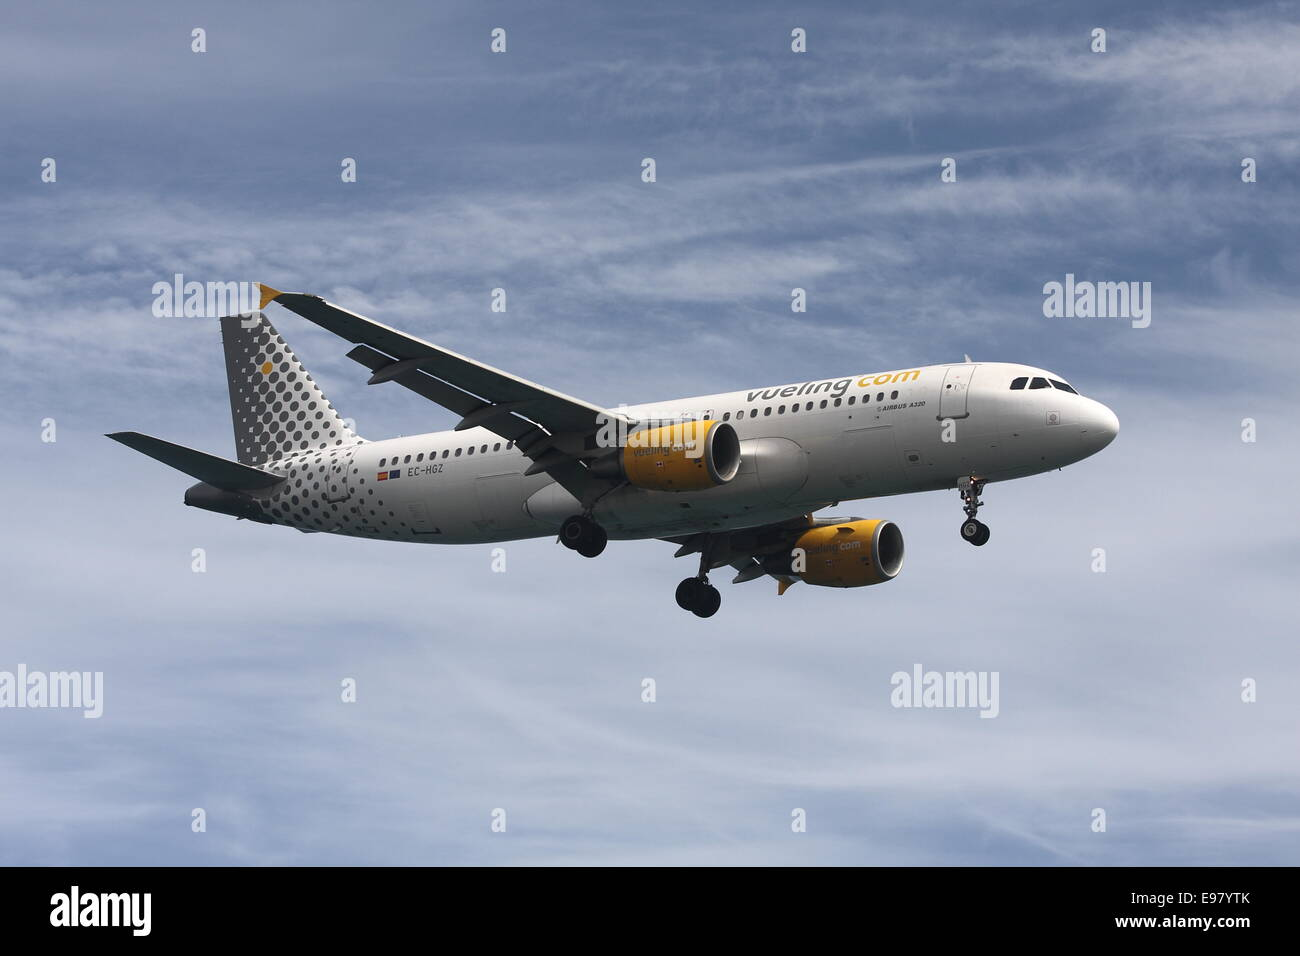 A Vueling Airbus A320, coming in to land. - Stock Image